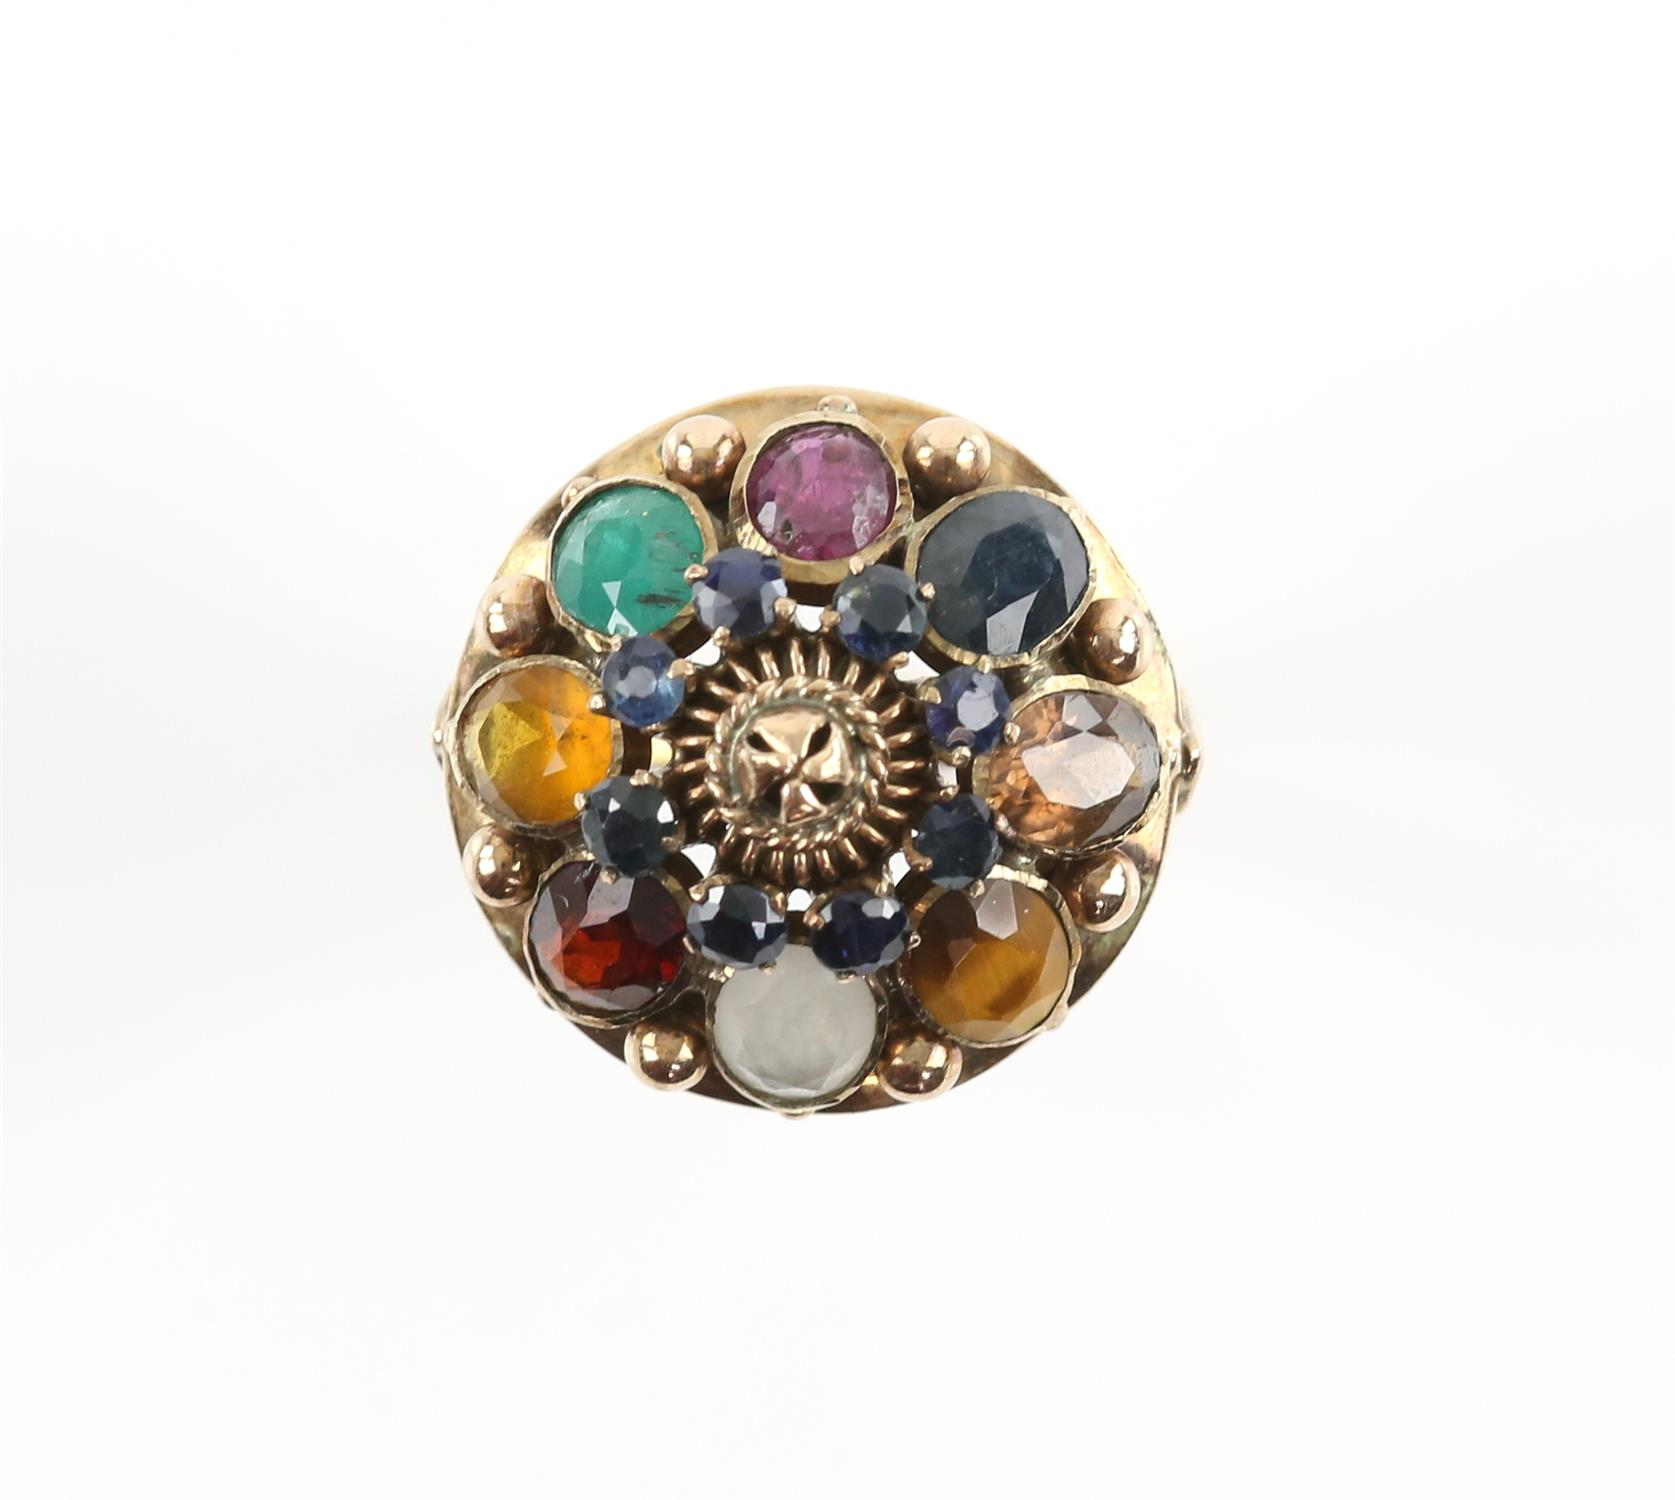 Gemstone set princess ring, set with round and oval cut sapphires, rubies, emeralds, tigers eye,